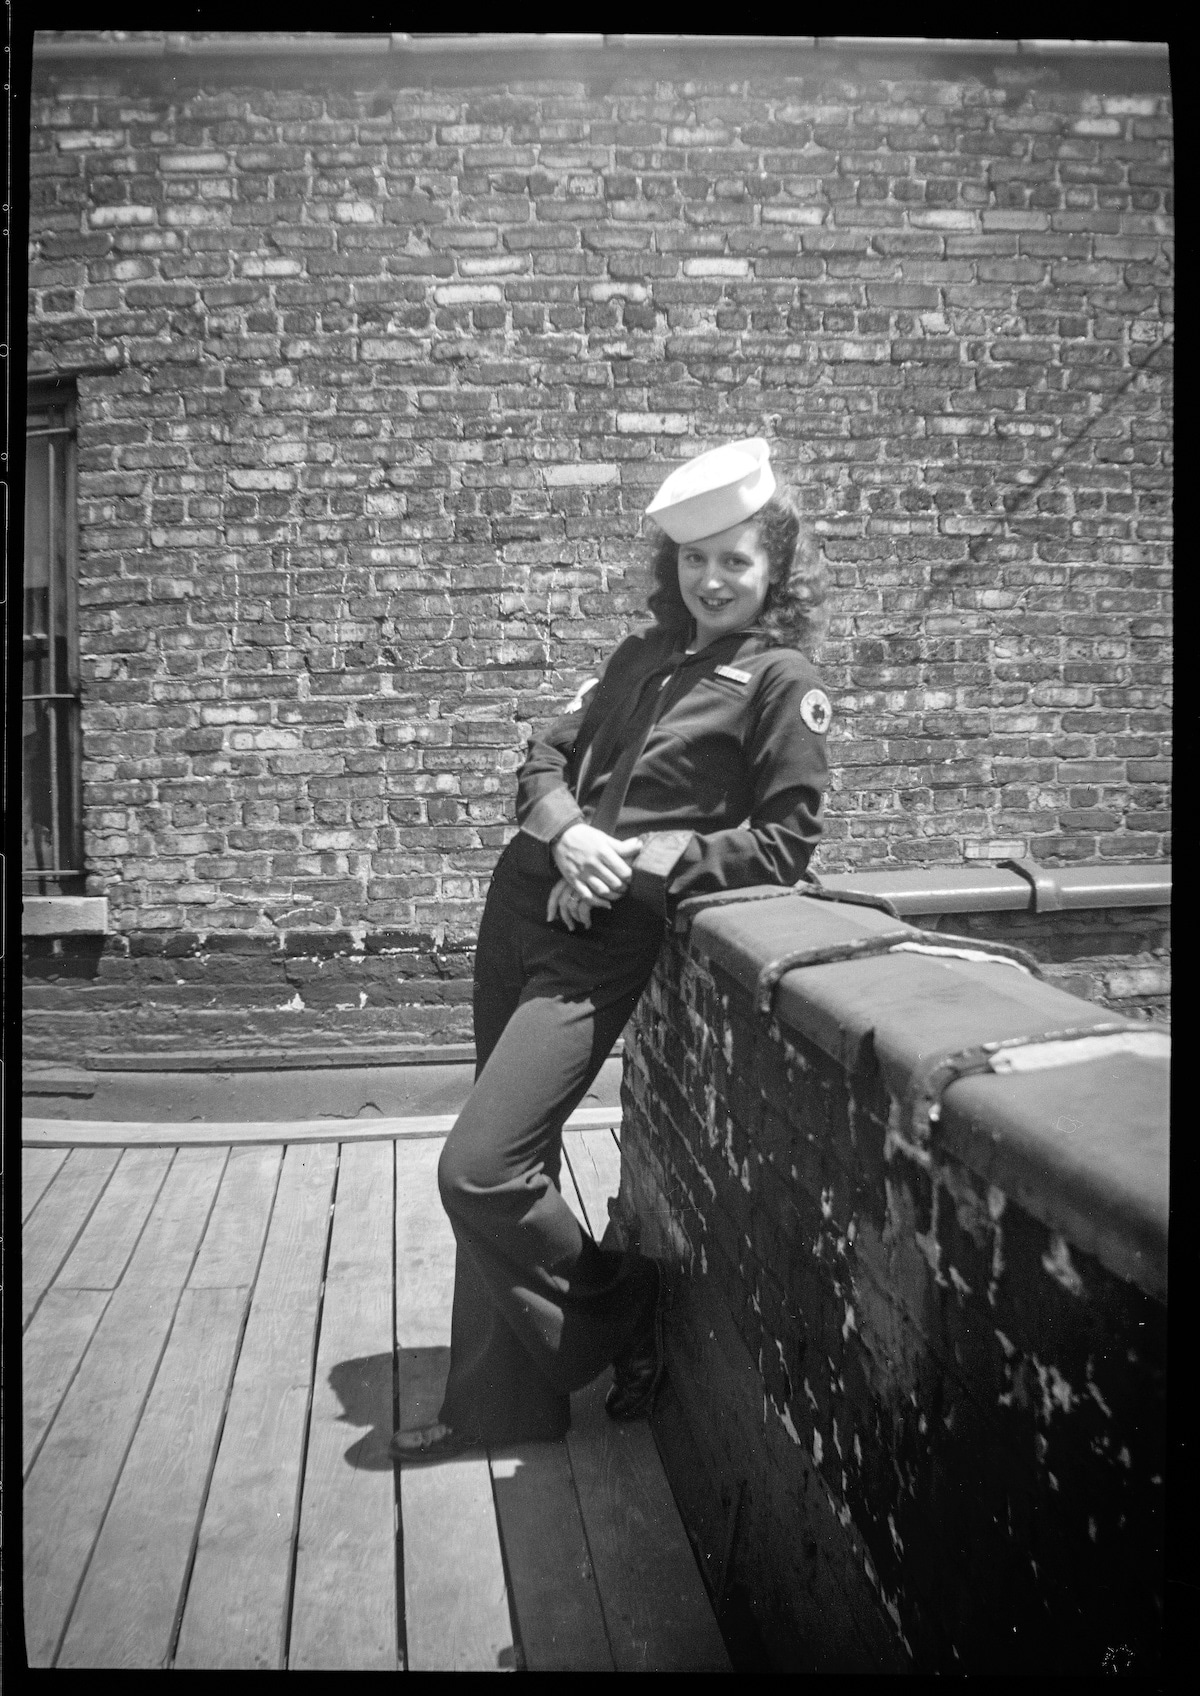 Girl in Chicago Posing in Naval Costume